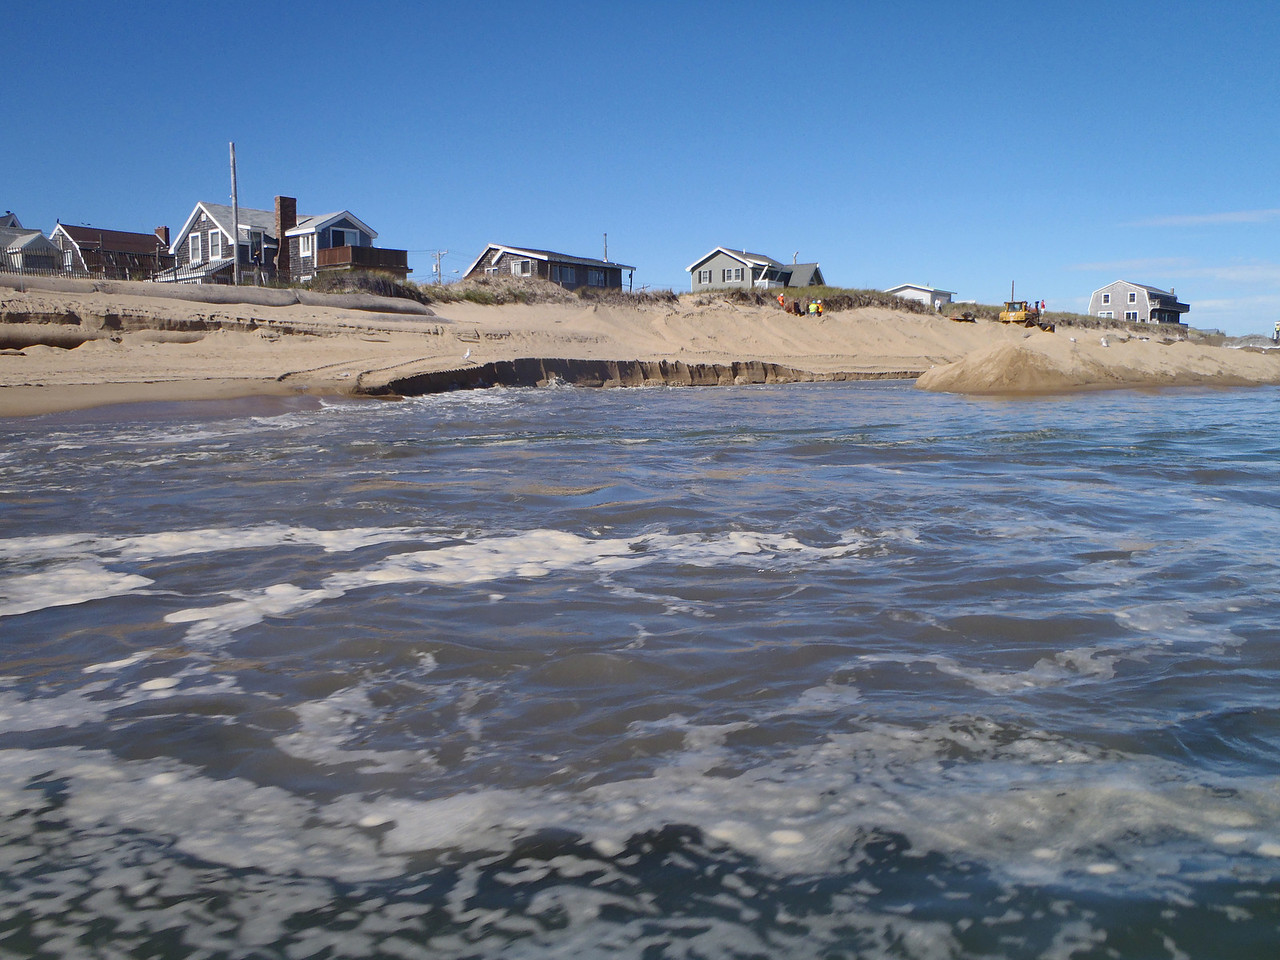 Pumping in sand from outside the mouth of the Merrimack River.